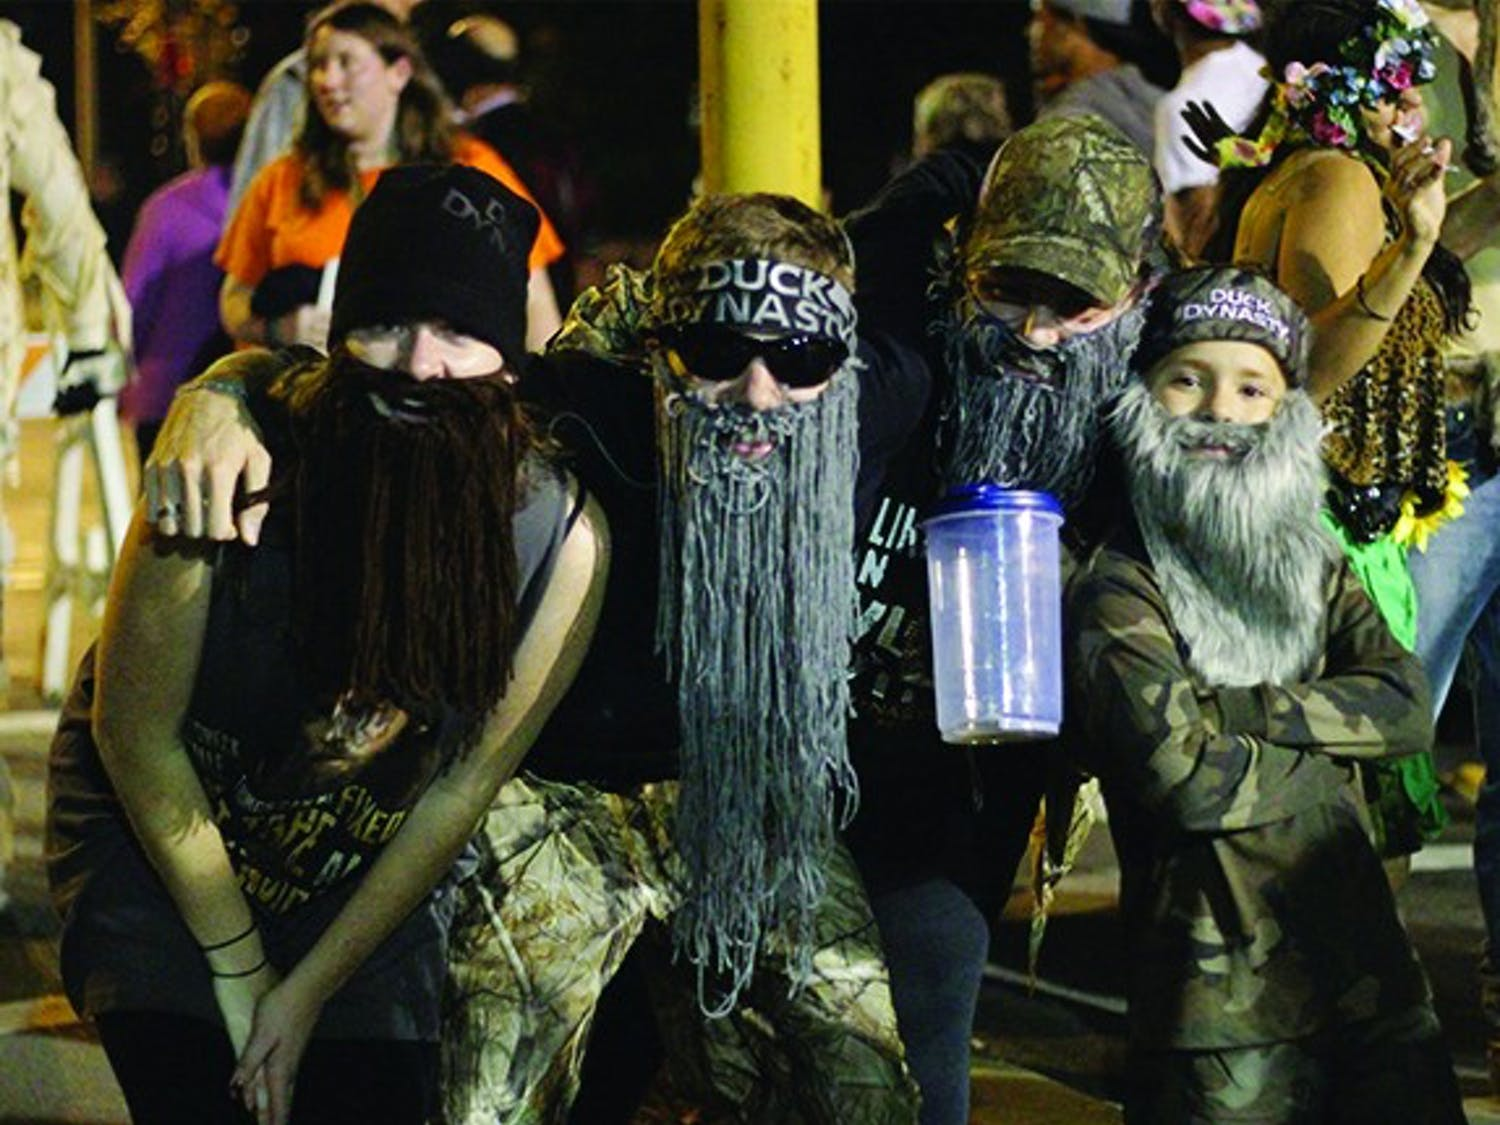 """Revelers swarmed the street October 31st to celebrate Halloween on Franklin Street. Around 300 officers were present to make sure the the fifth year of """"Homegrown Halloween"""" went off without a hitch in downtown Chapel Hill. One group decided to dress up as the popular sensation Duck Dynasty, complete with mop beards and a child."""